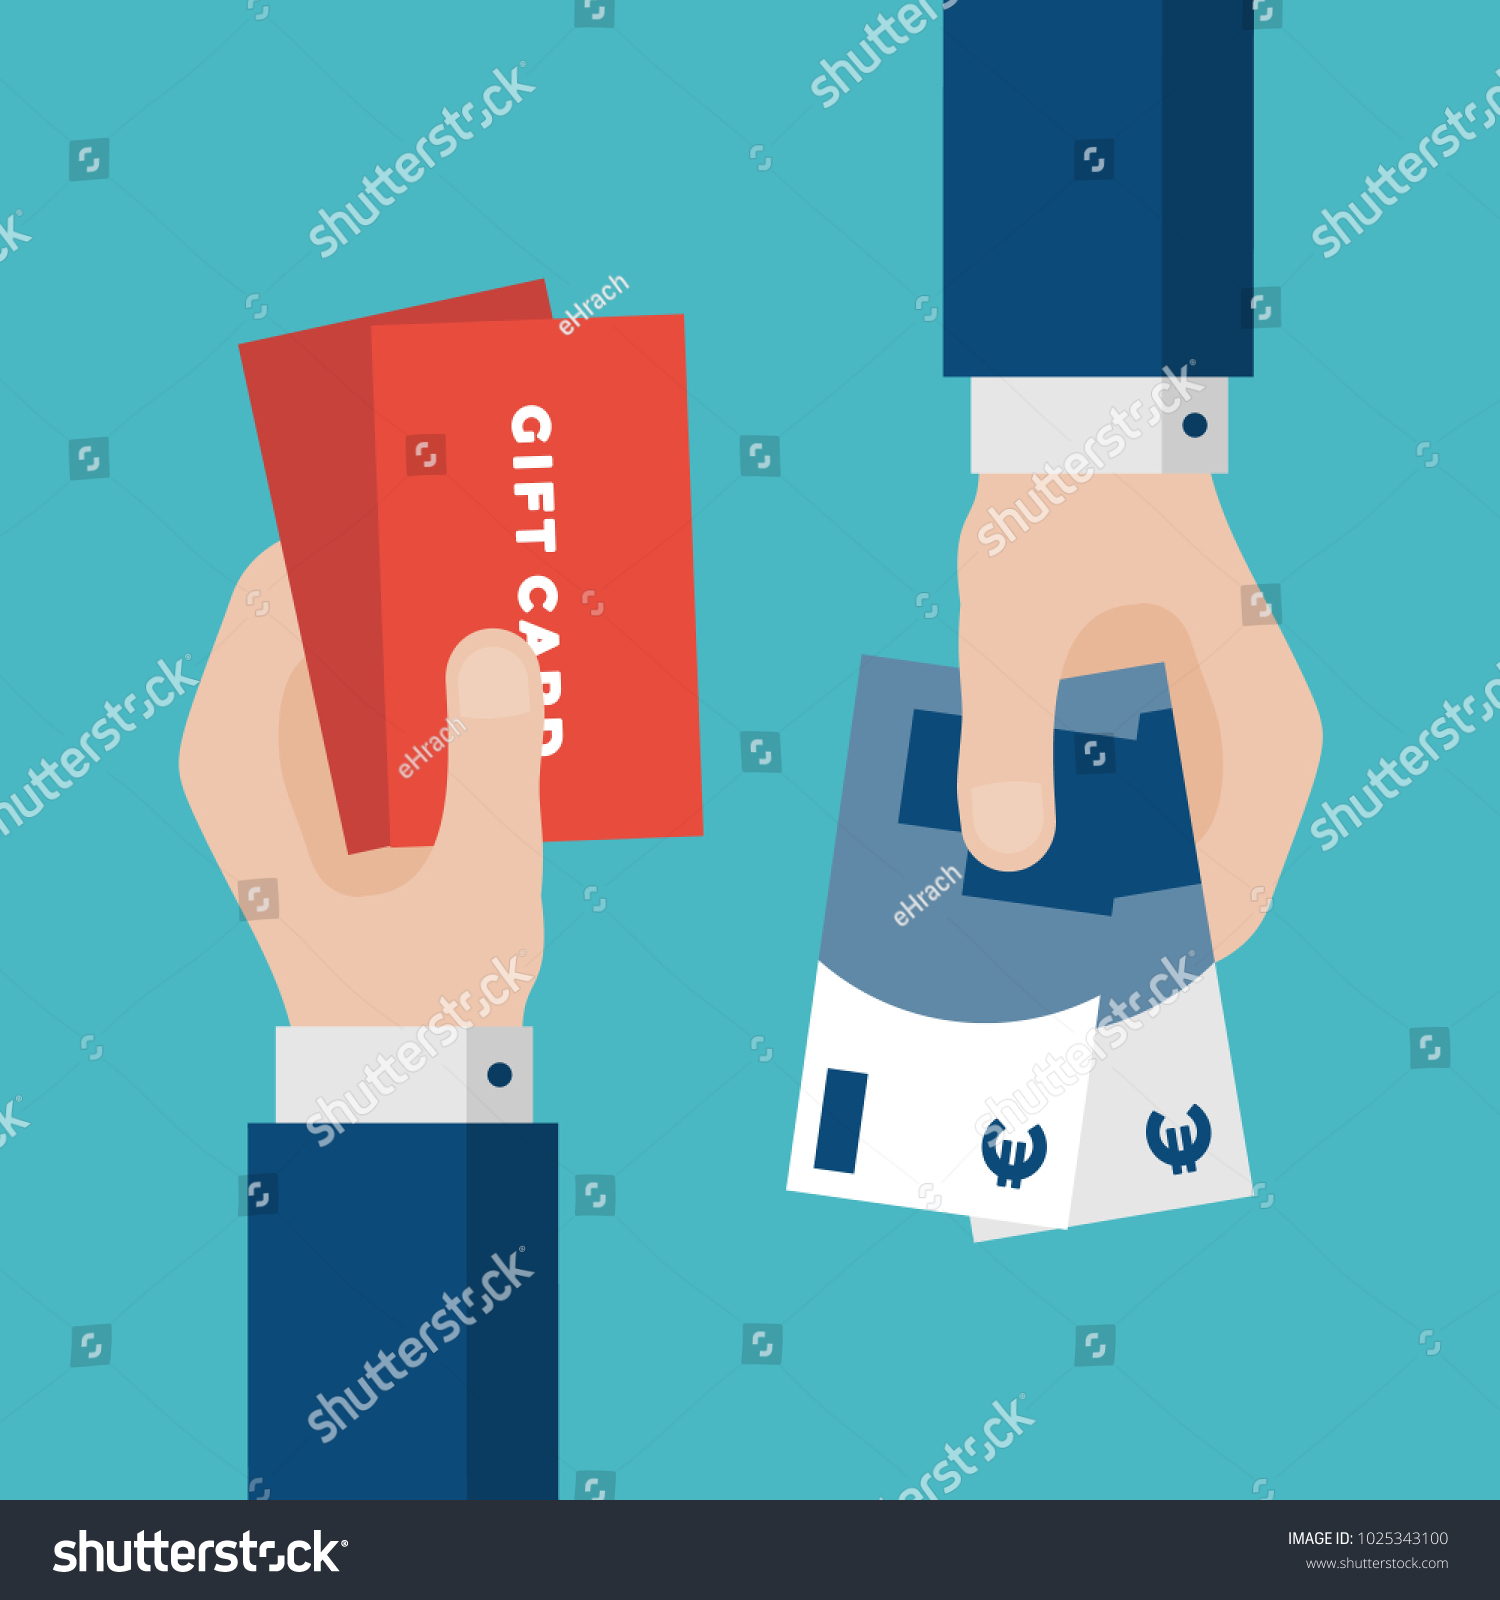 Flat Design Exchange Gift Cards Euros Stock Vector 1025343100 ...